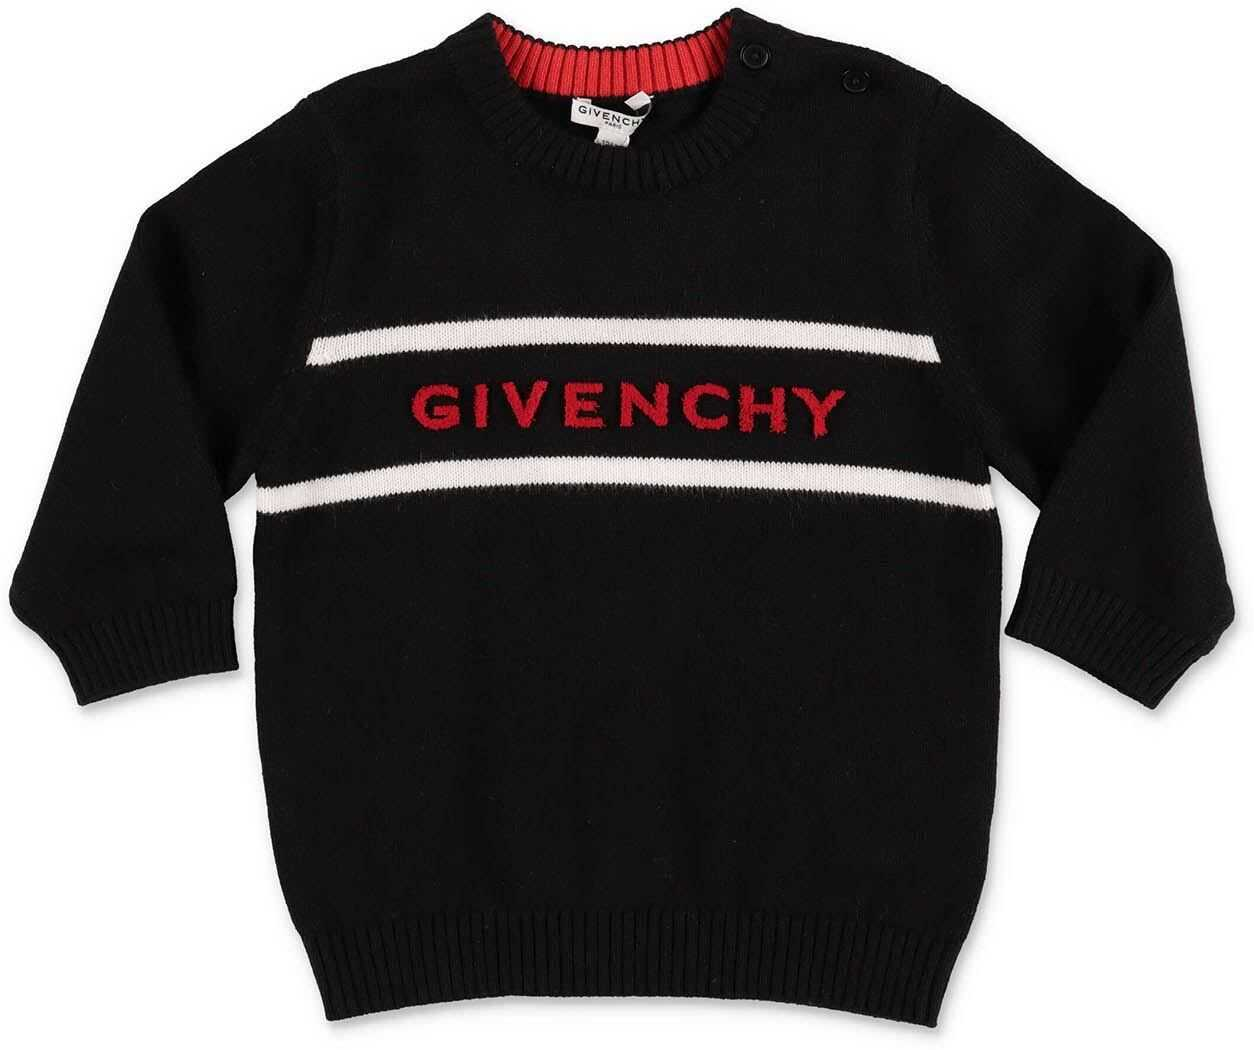 Givenchy Black Sweater With Inlay Black